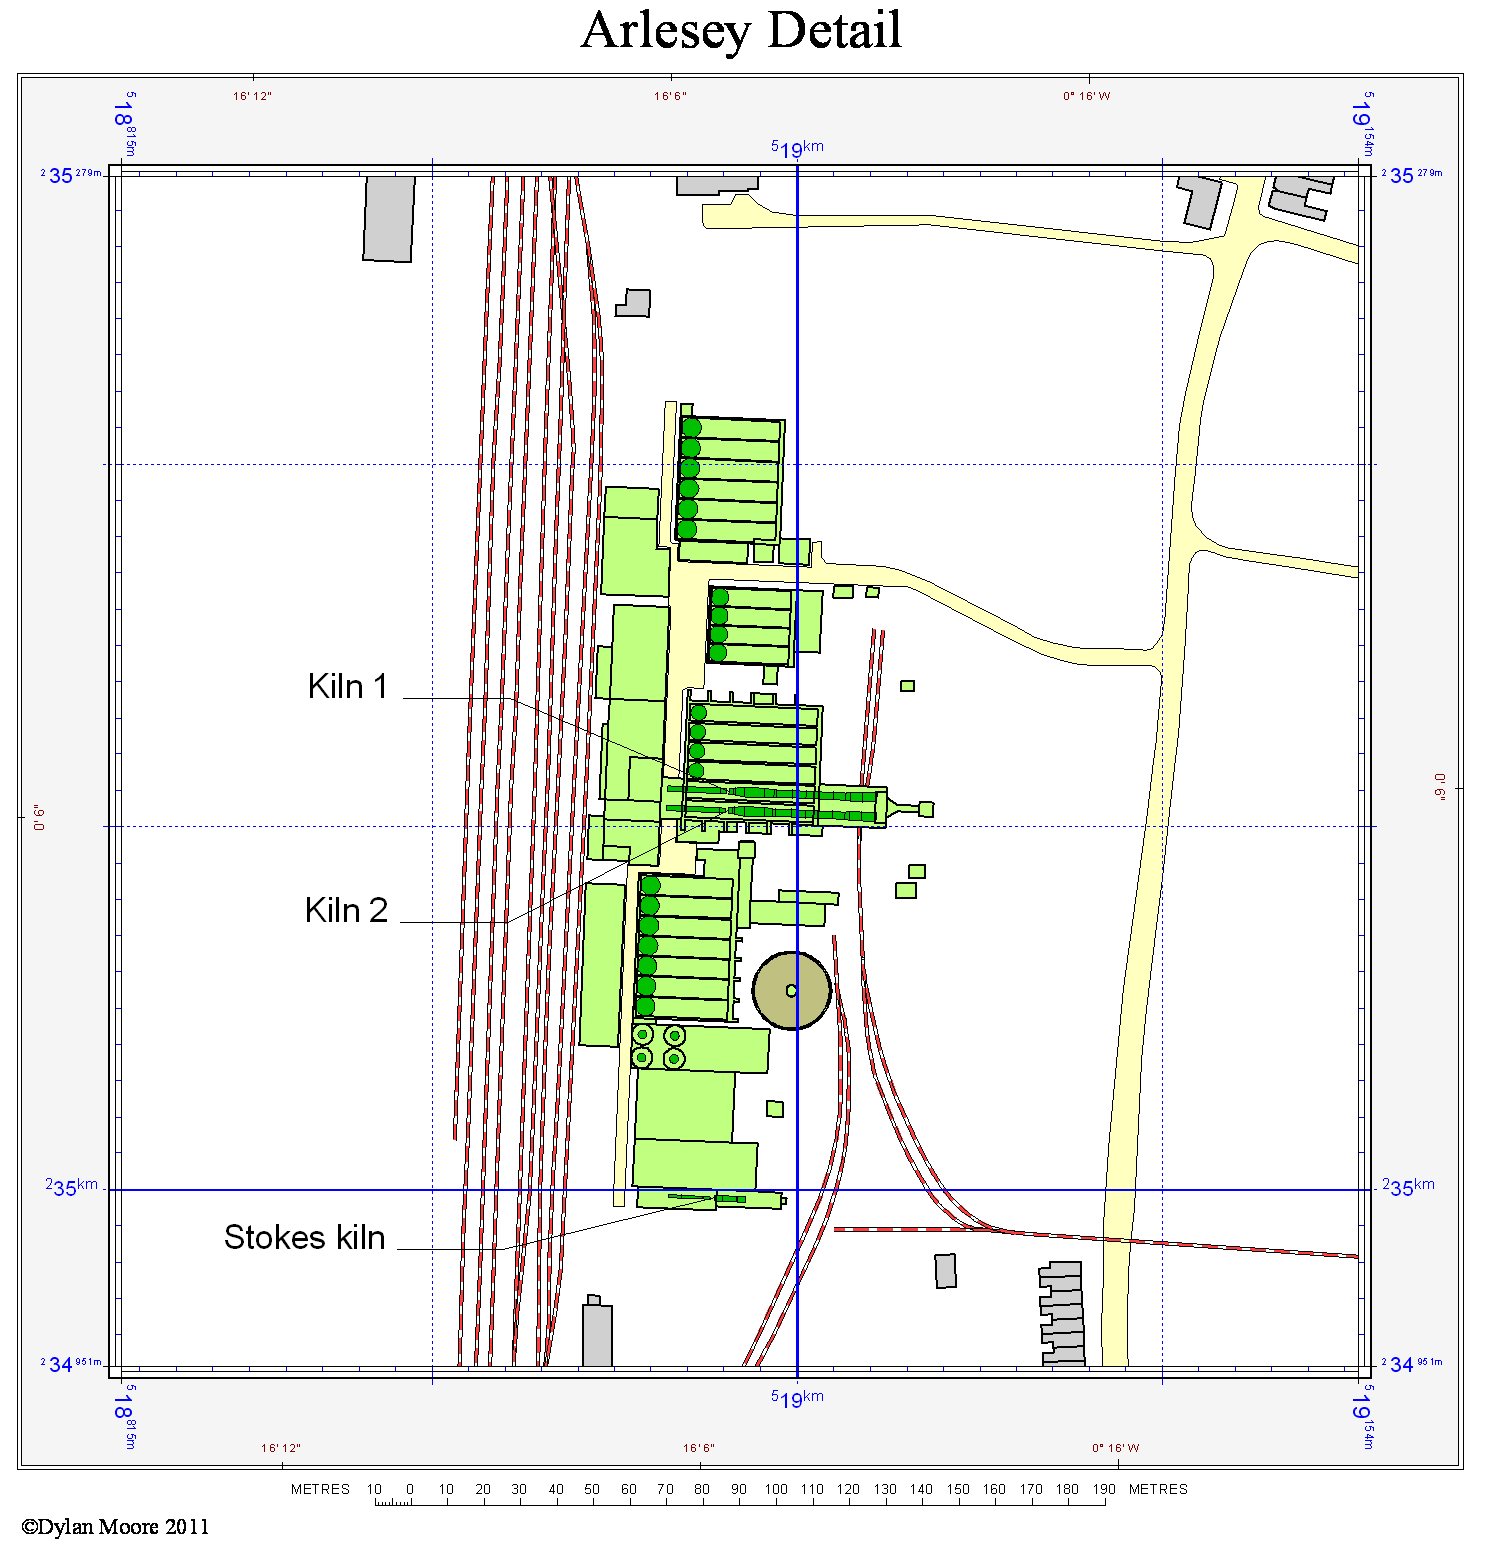 Arlesey cement layout map